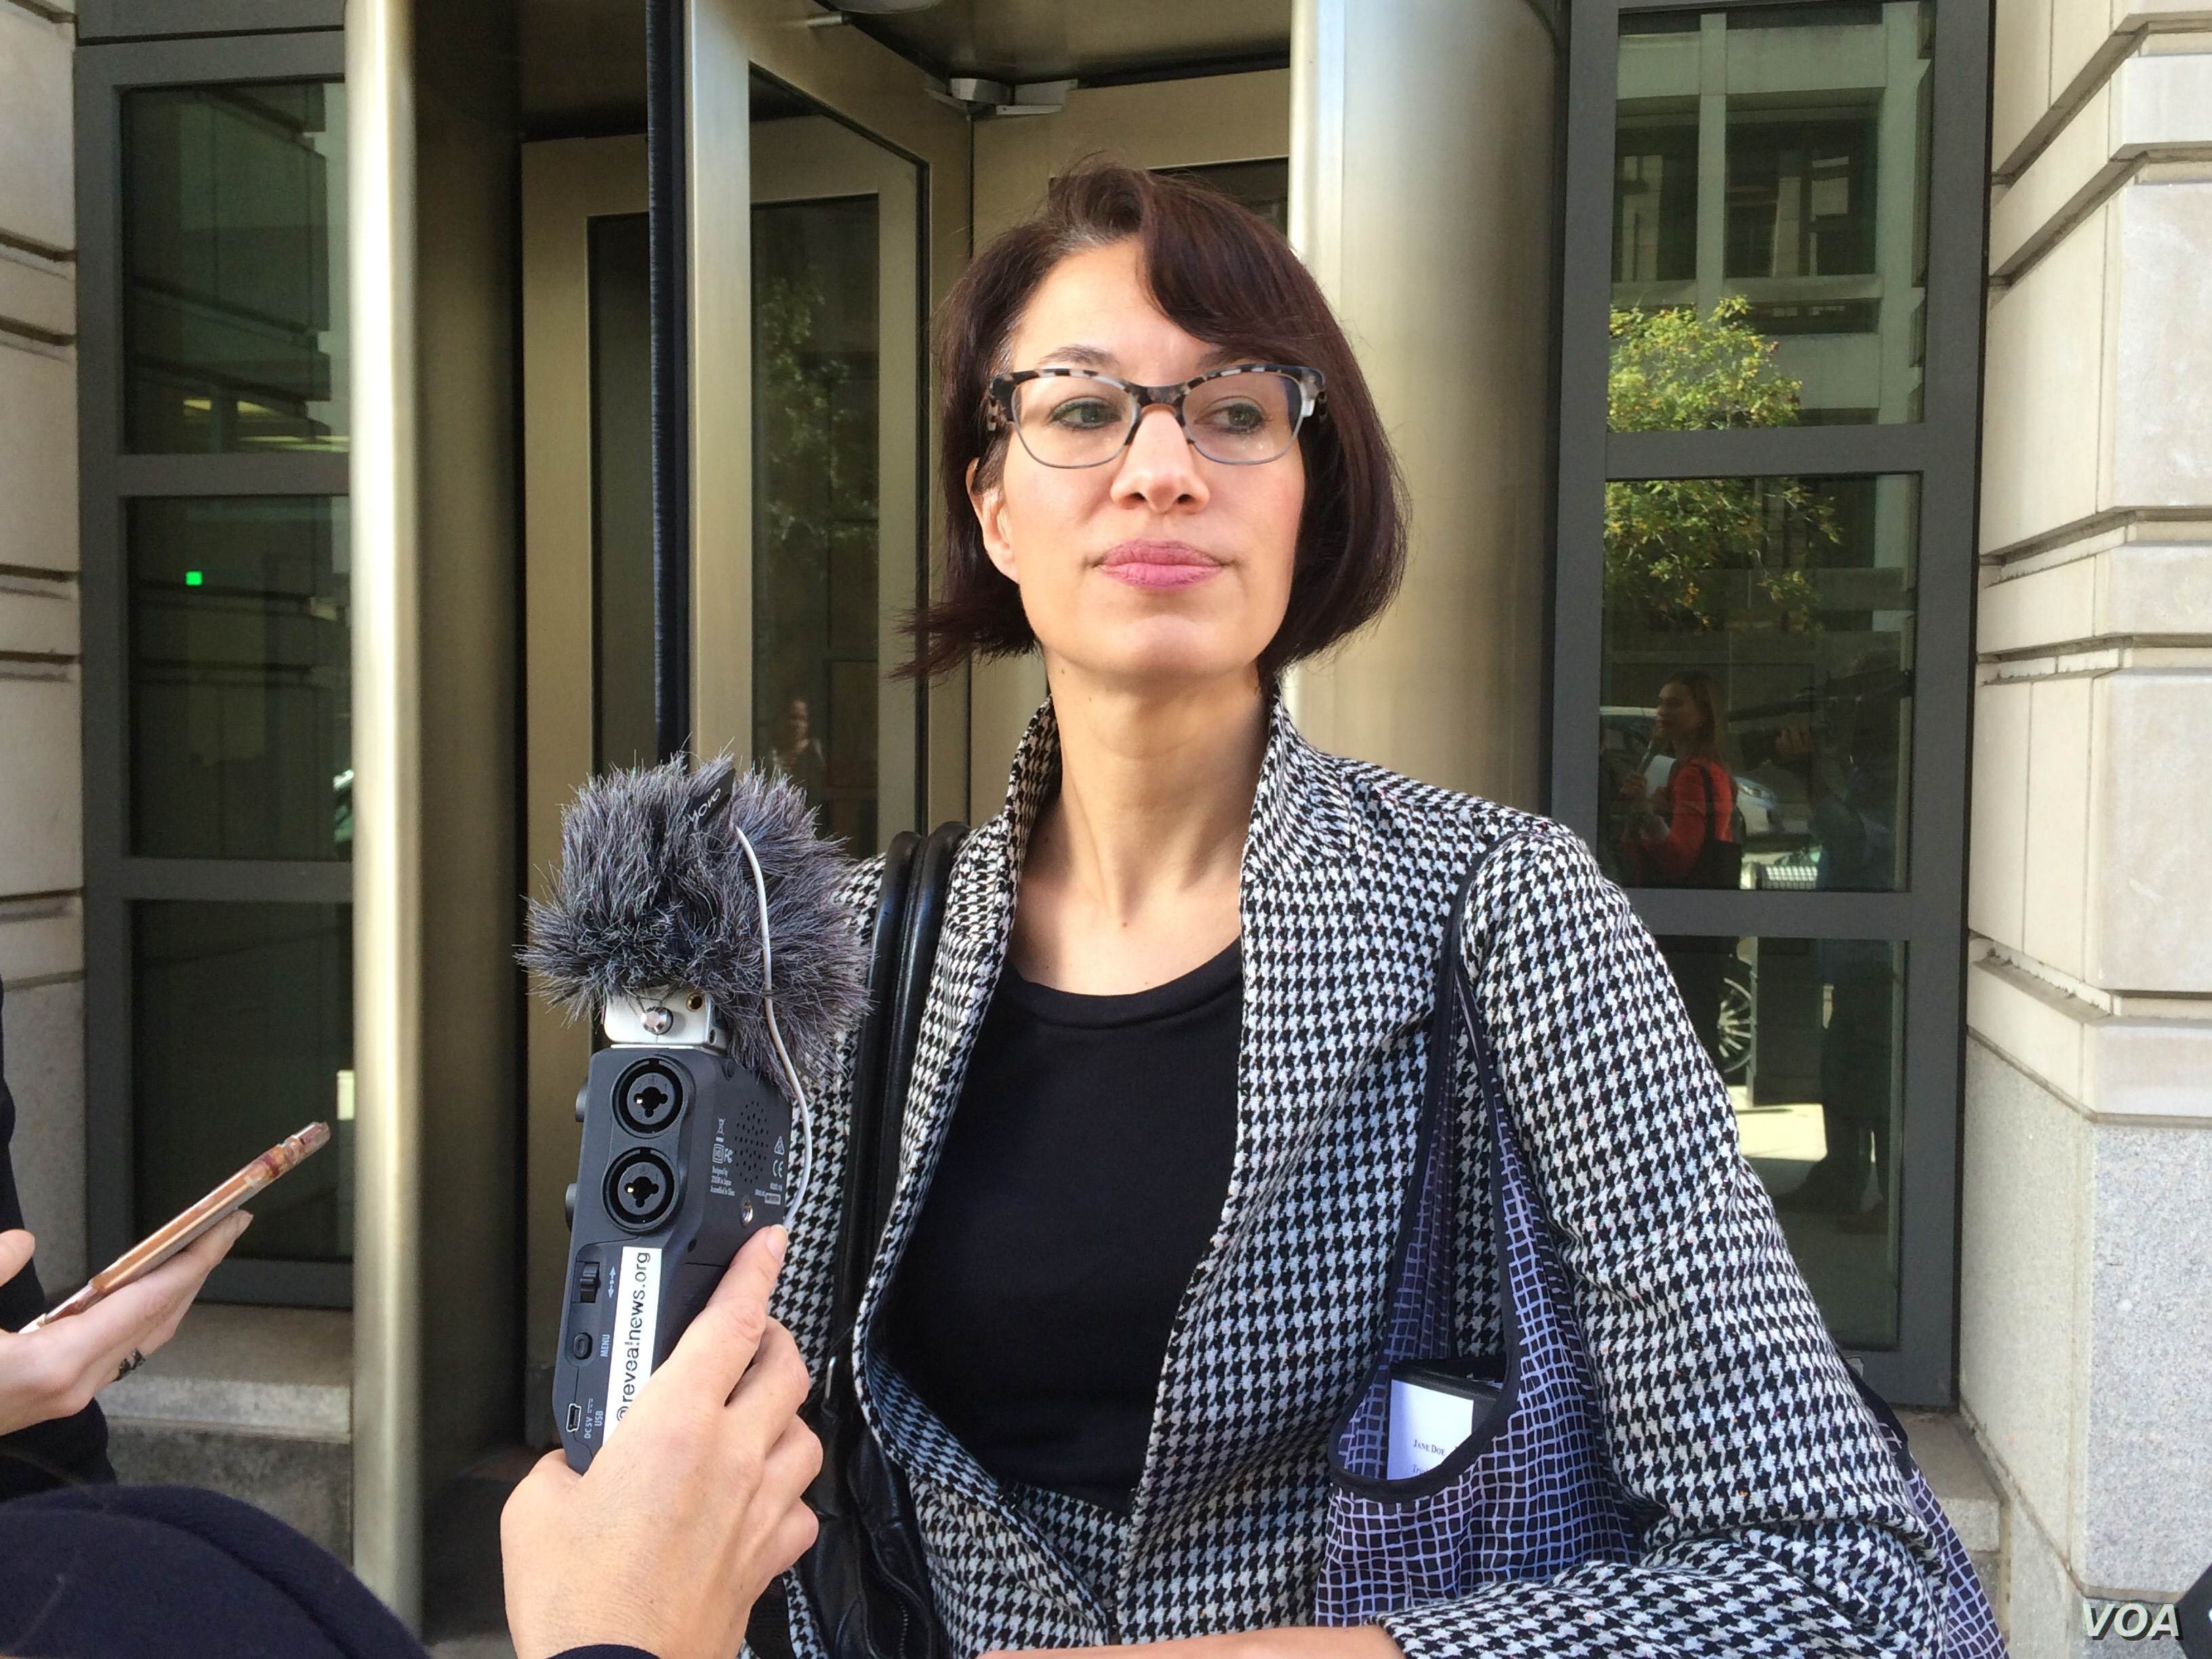 ACLU lawyer Brigitte Amiri talks to reporters after an appeals court hearing on whether a pregnant undocumented immigrant should be allowed to obtain an abortion.